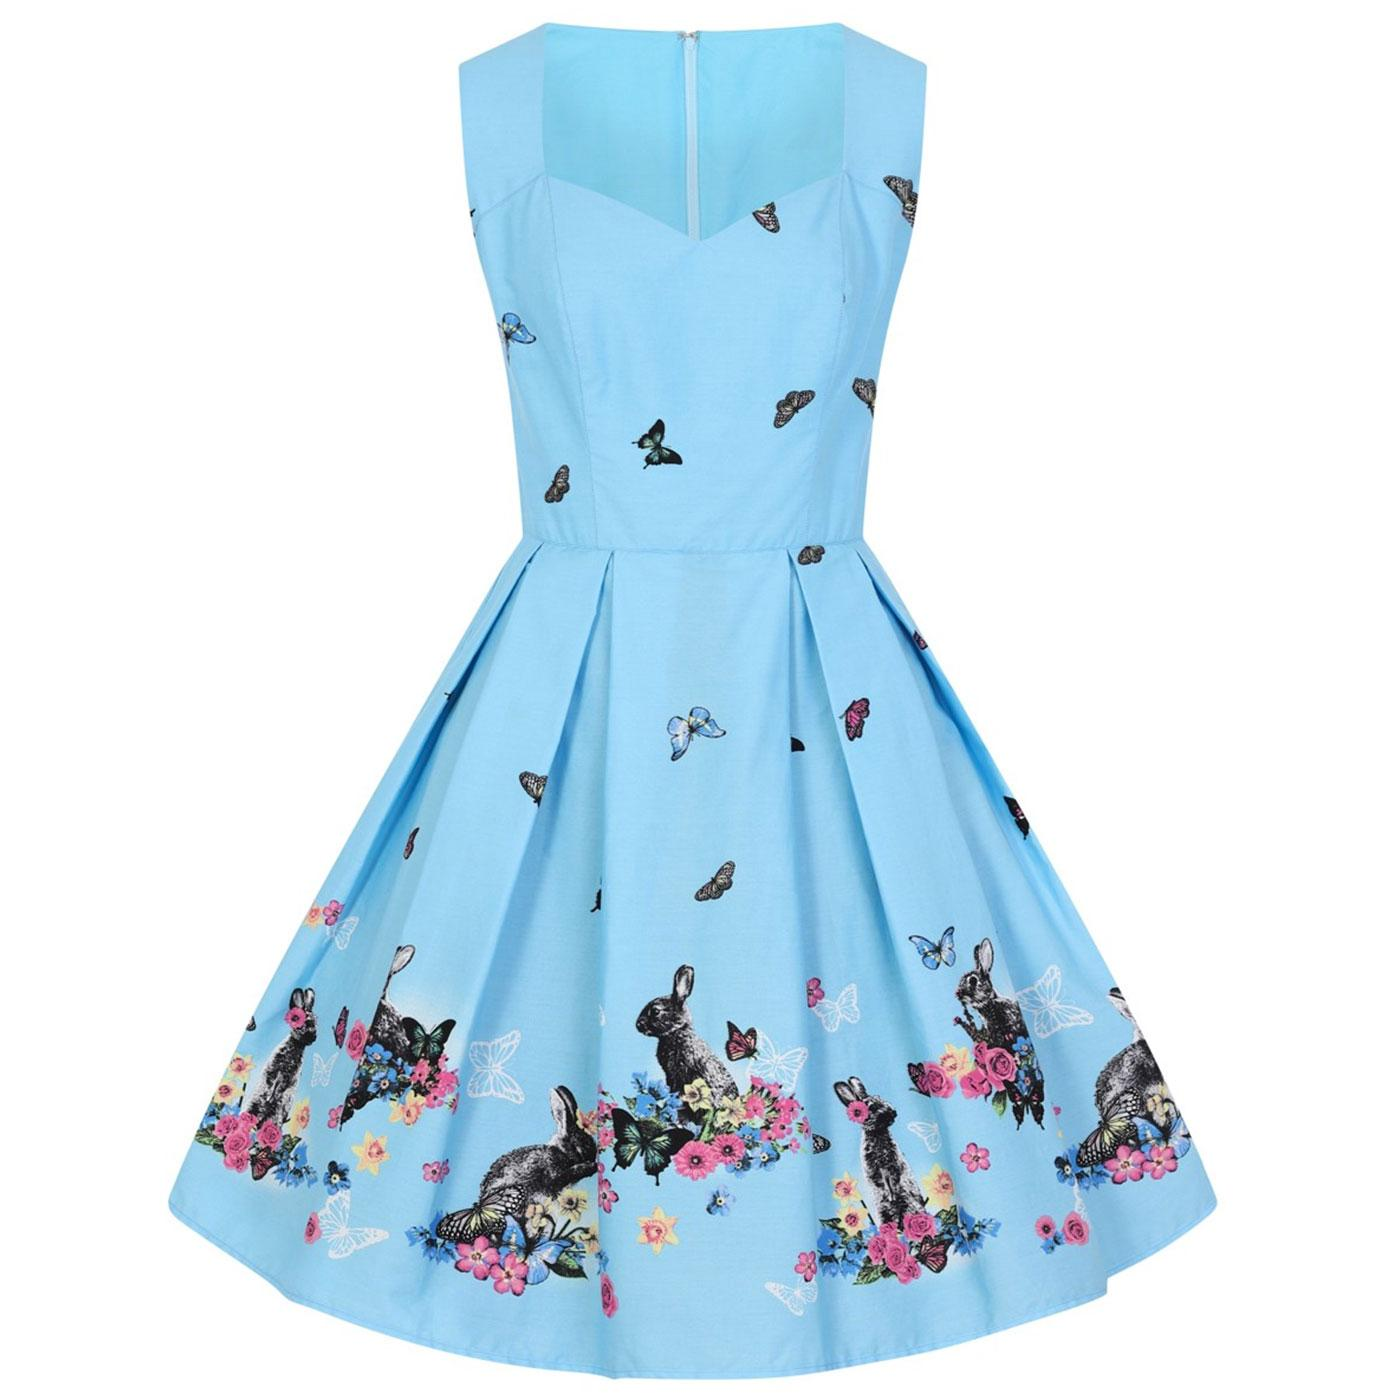 Cotton Tail HELL BUNNY Retro 60s Summer Dress